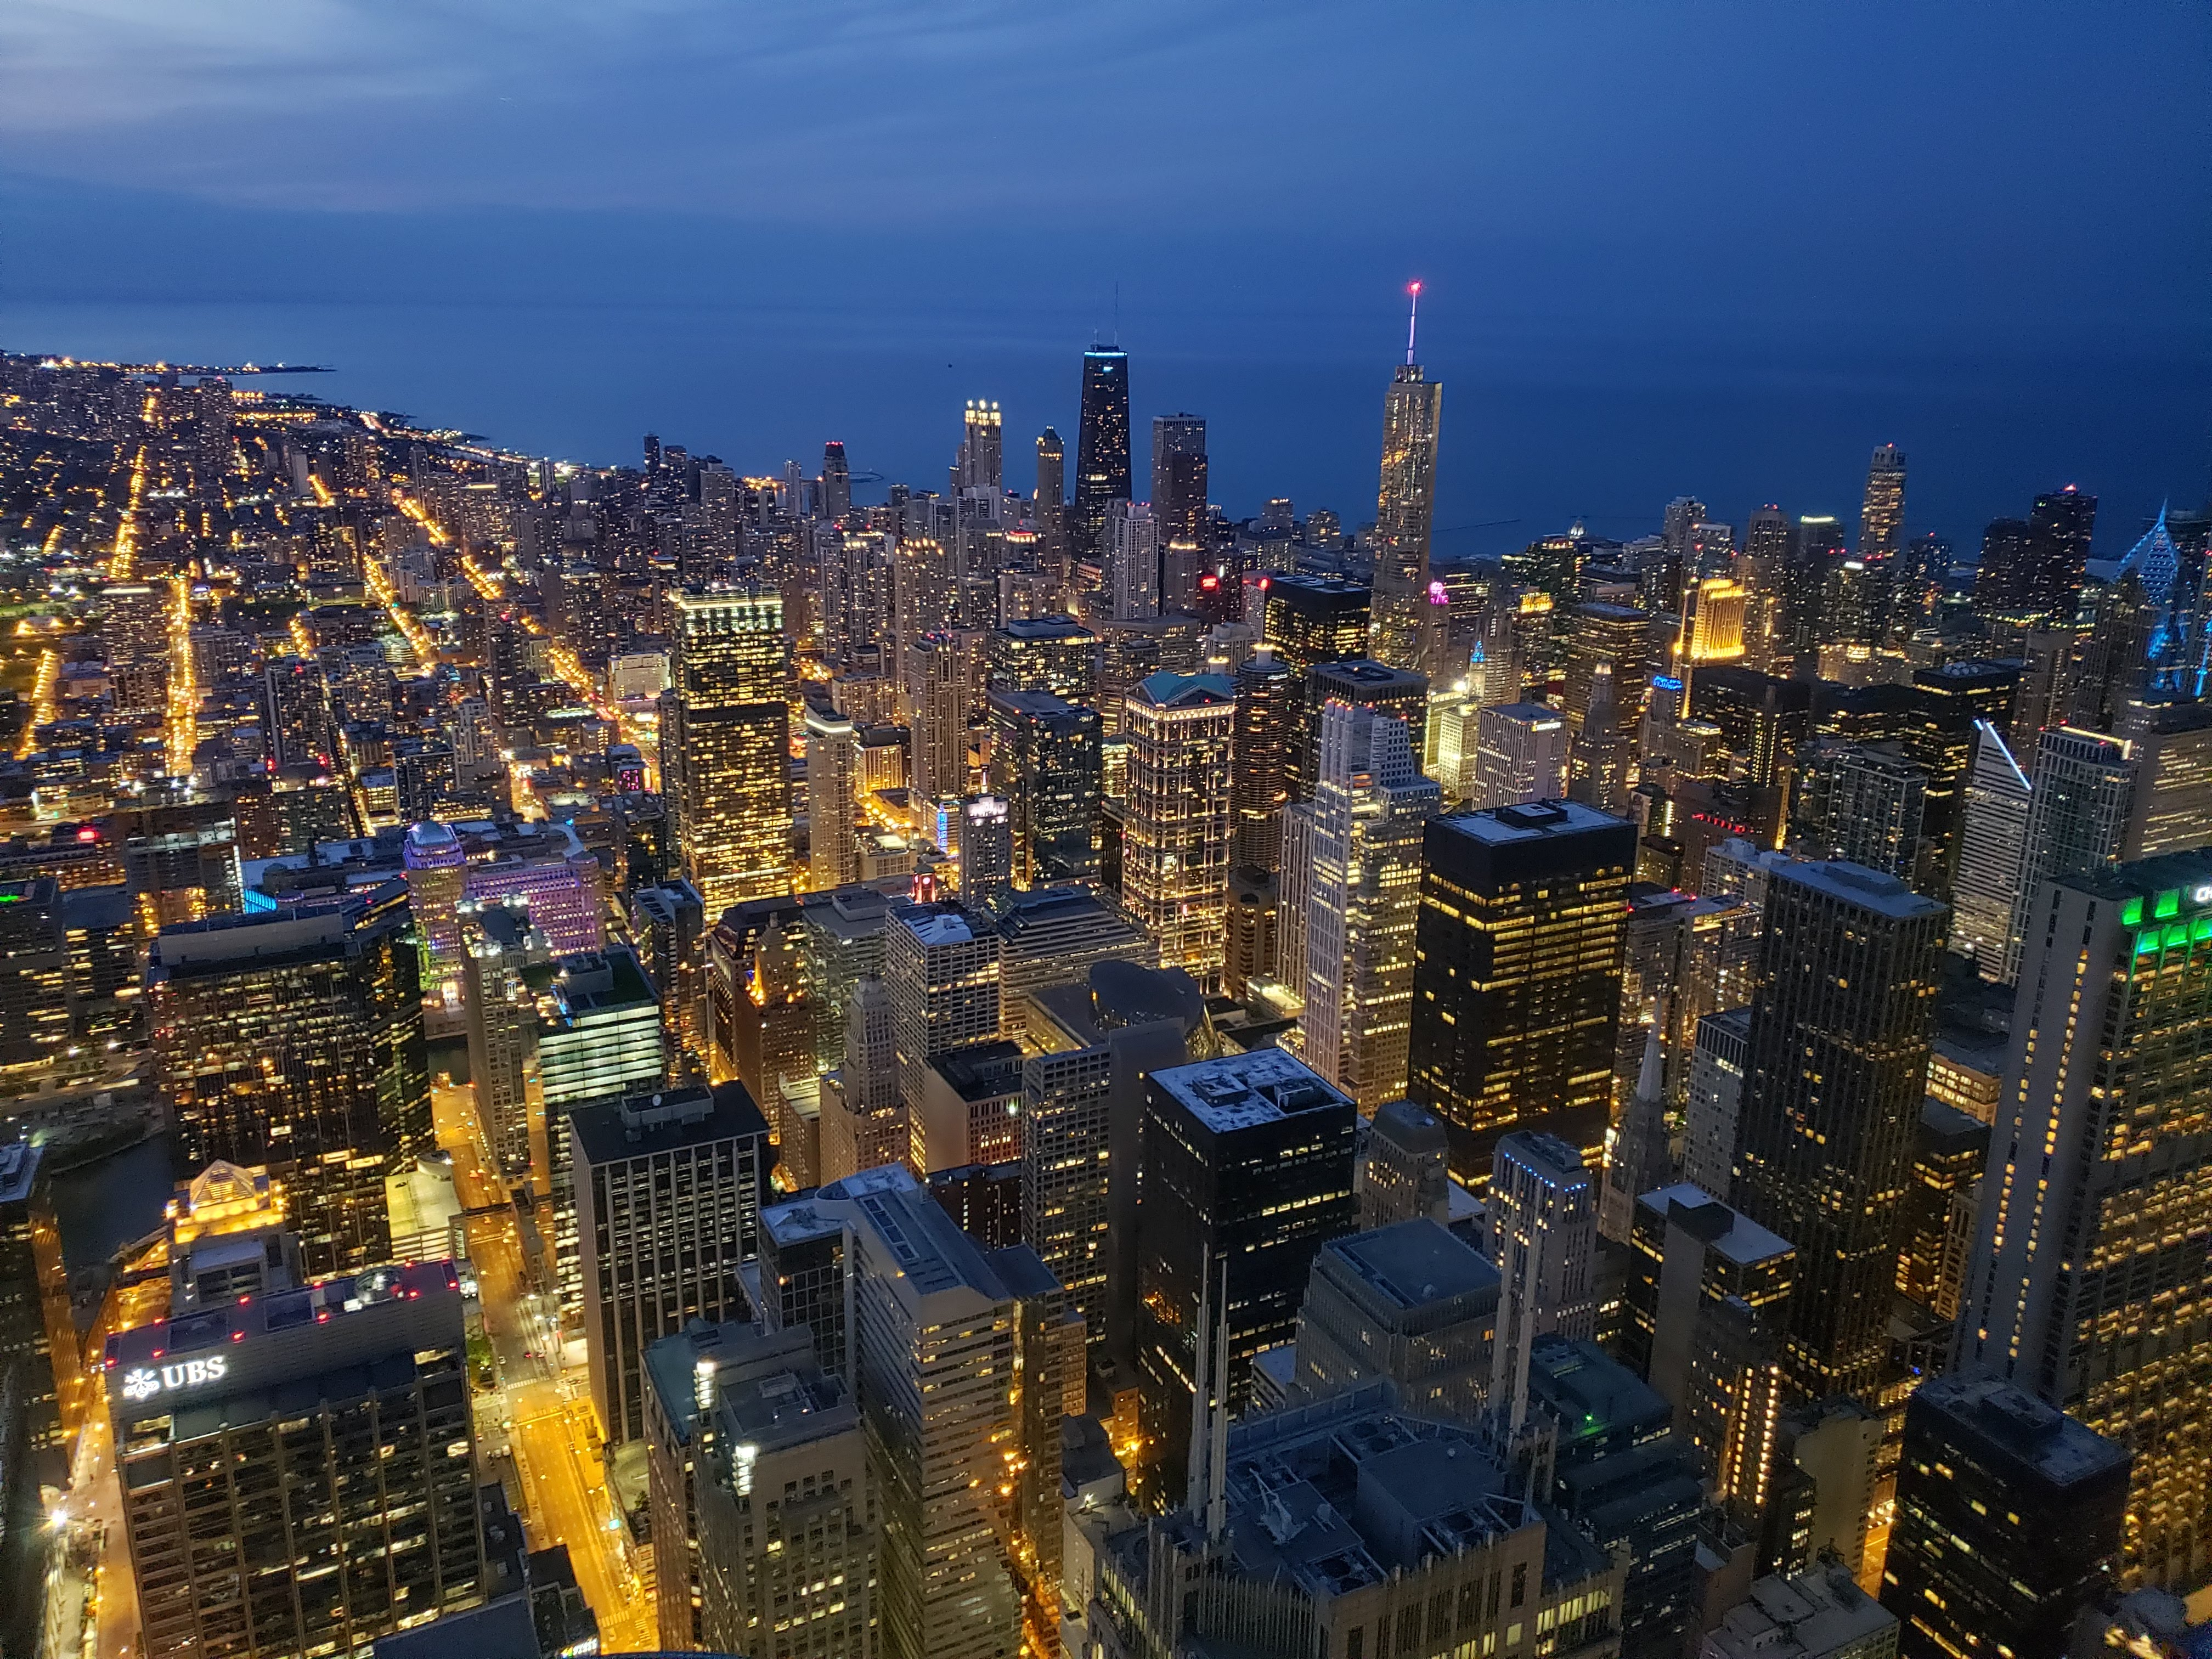 The view from Willis Tower after sunset